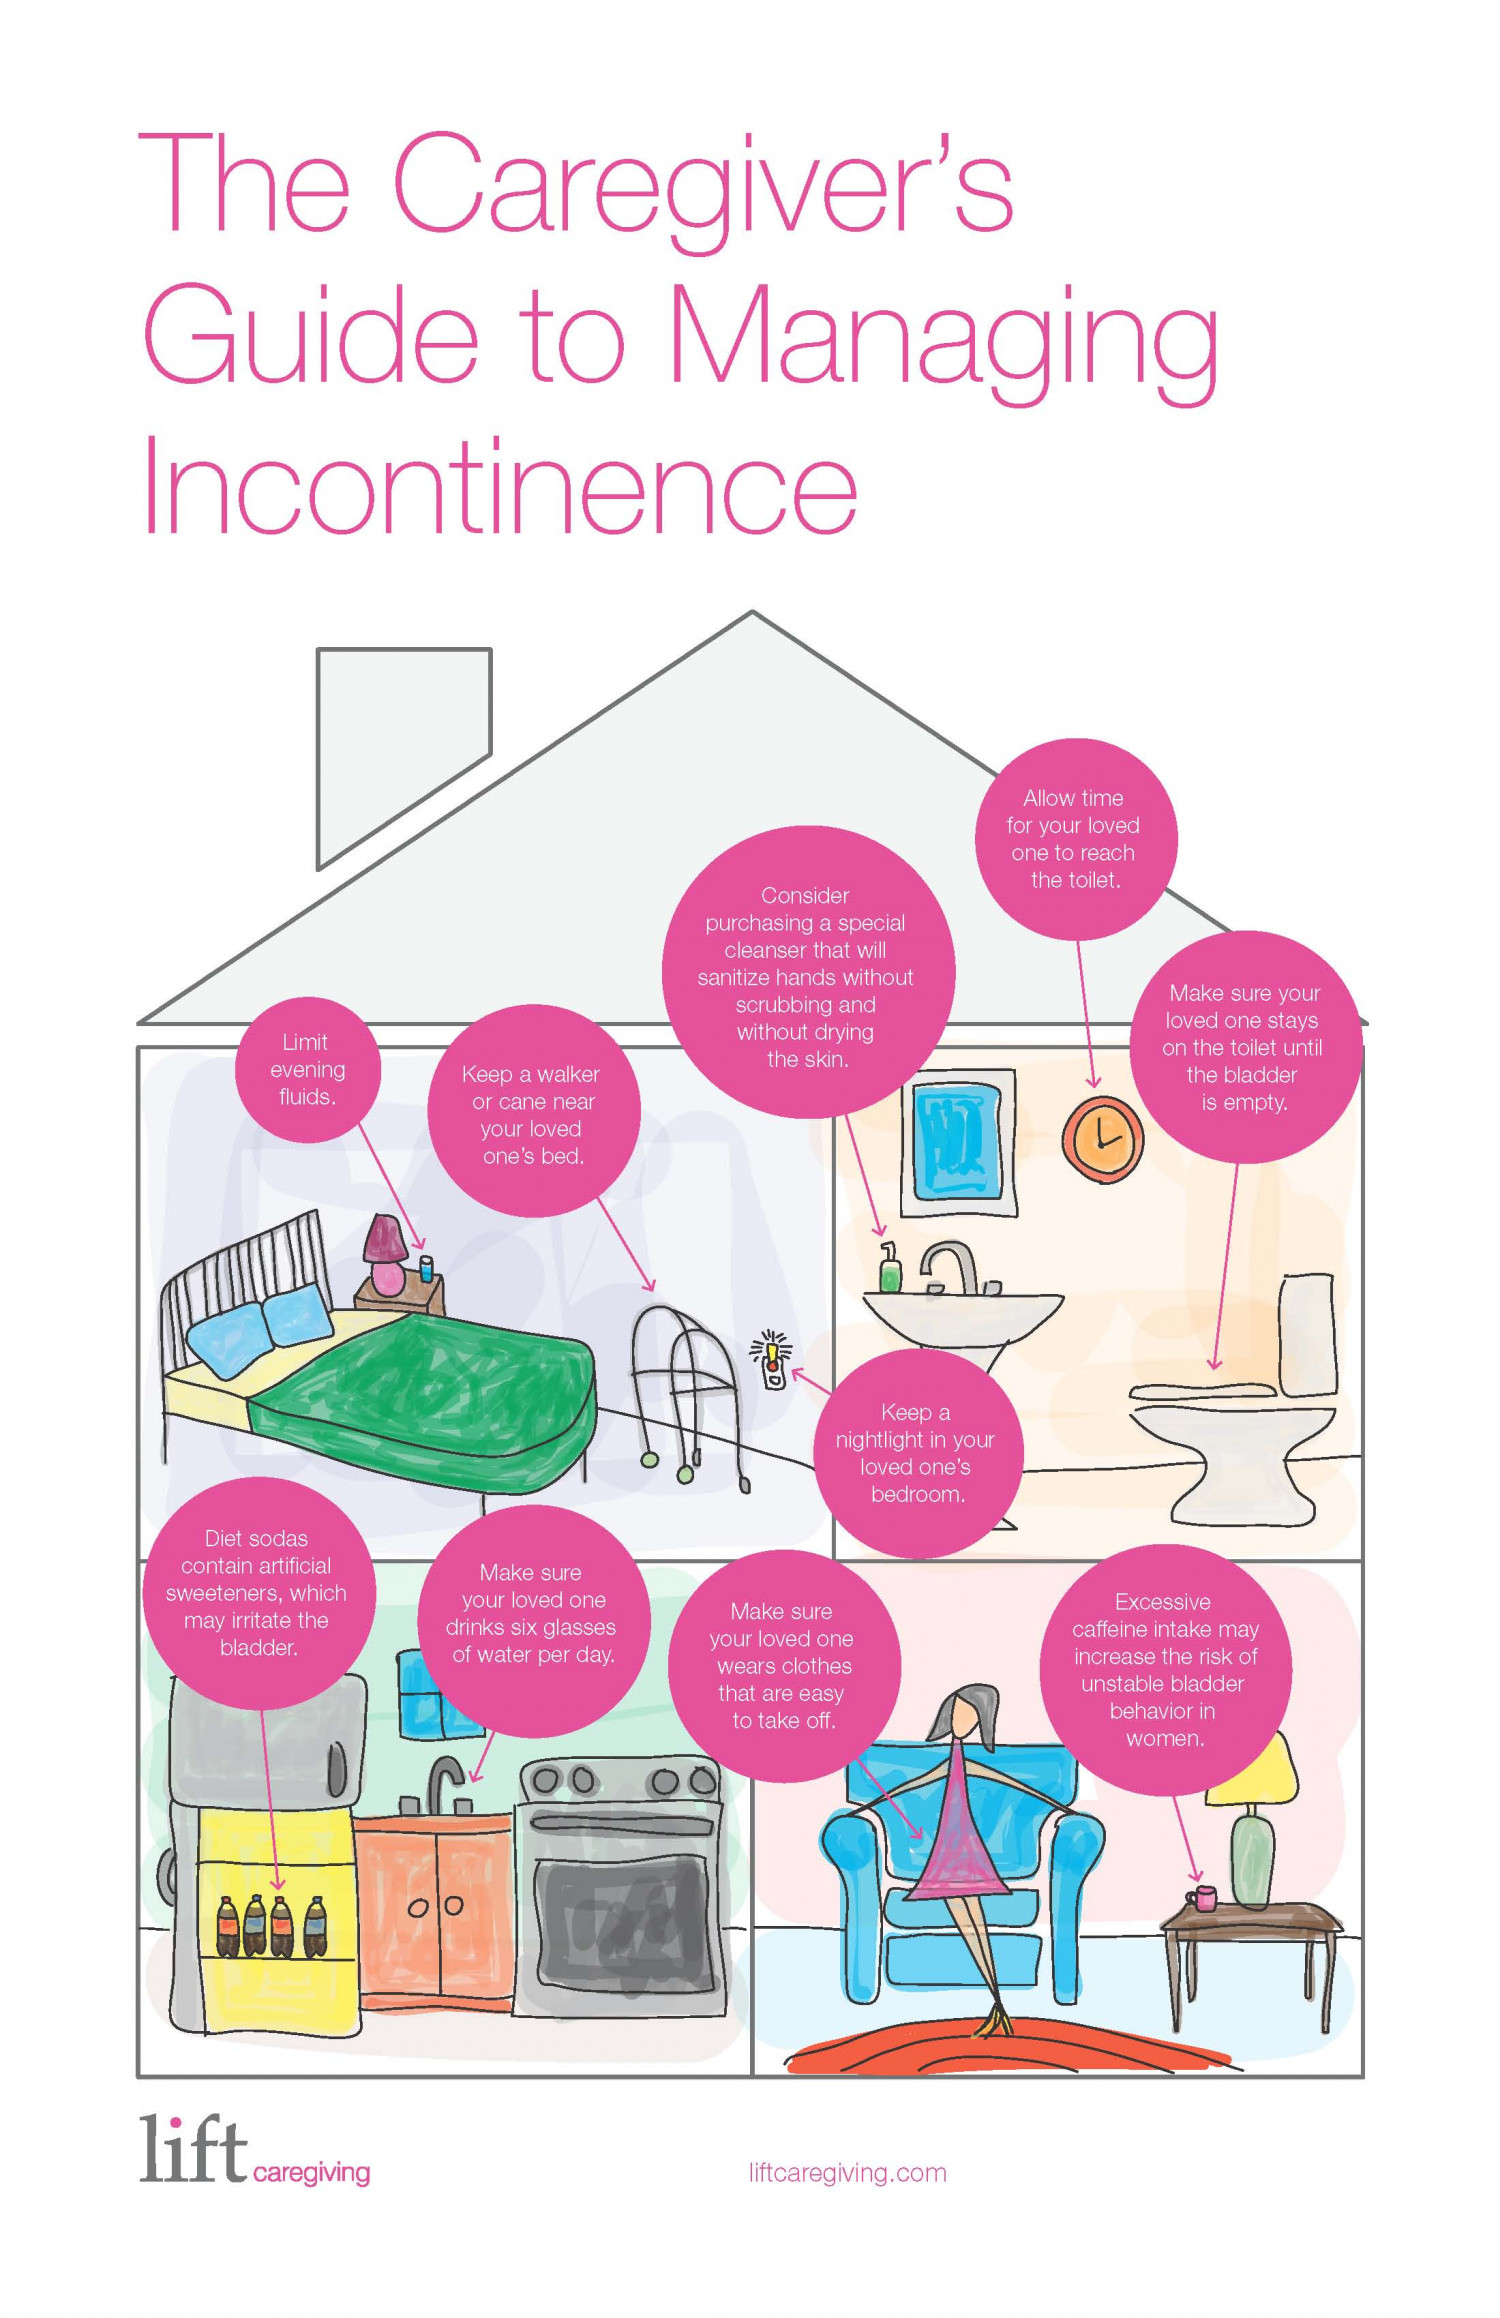 The Caregivers Guide to Managing Incontinence Infographic